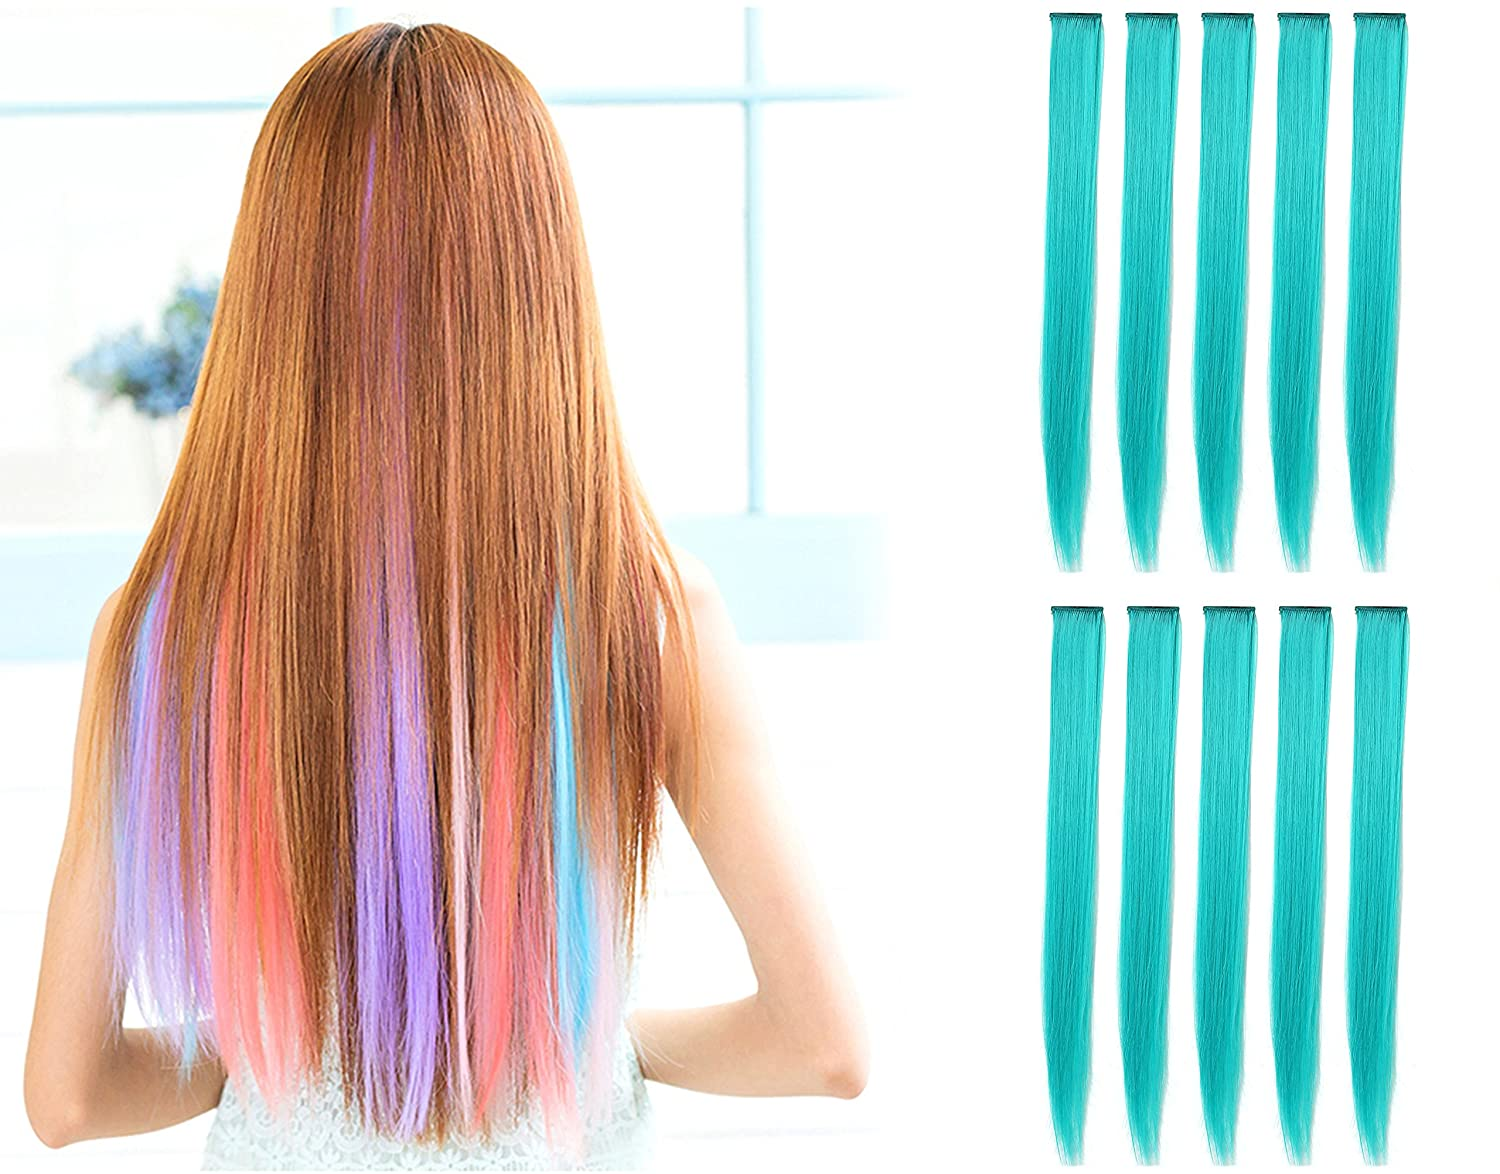 OneDor 23 Inch Colored Party Highlights Straight Hair Clip Extensions. Heat-Resistant Synthetic Hair Extensions in Multiple Colors (10 Pcs Teal Blue)